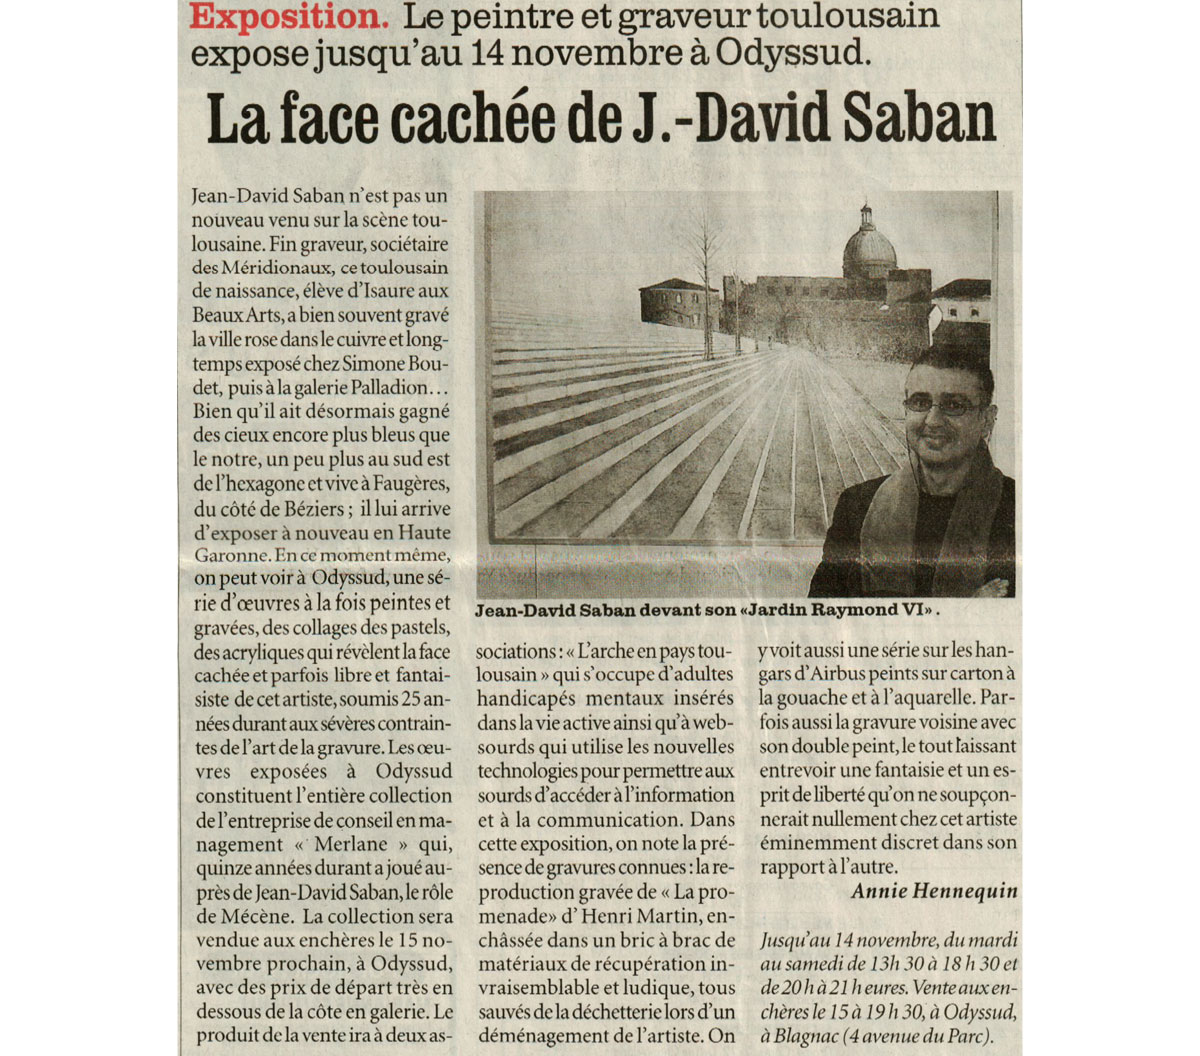 La face cachée de Jean David Saban